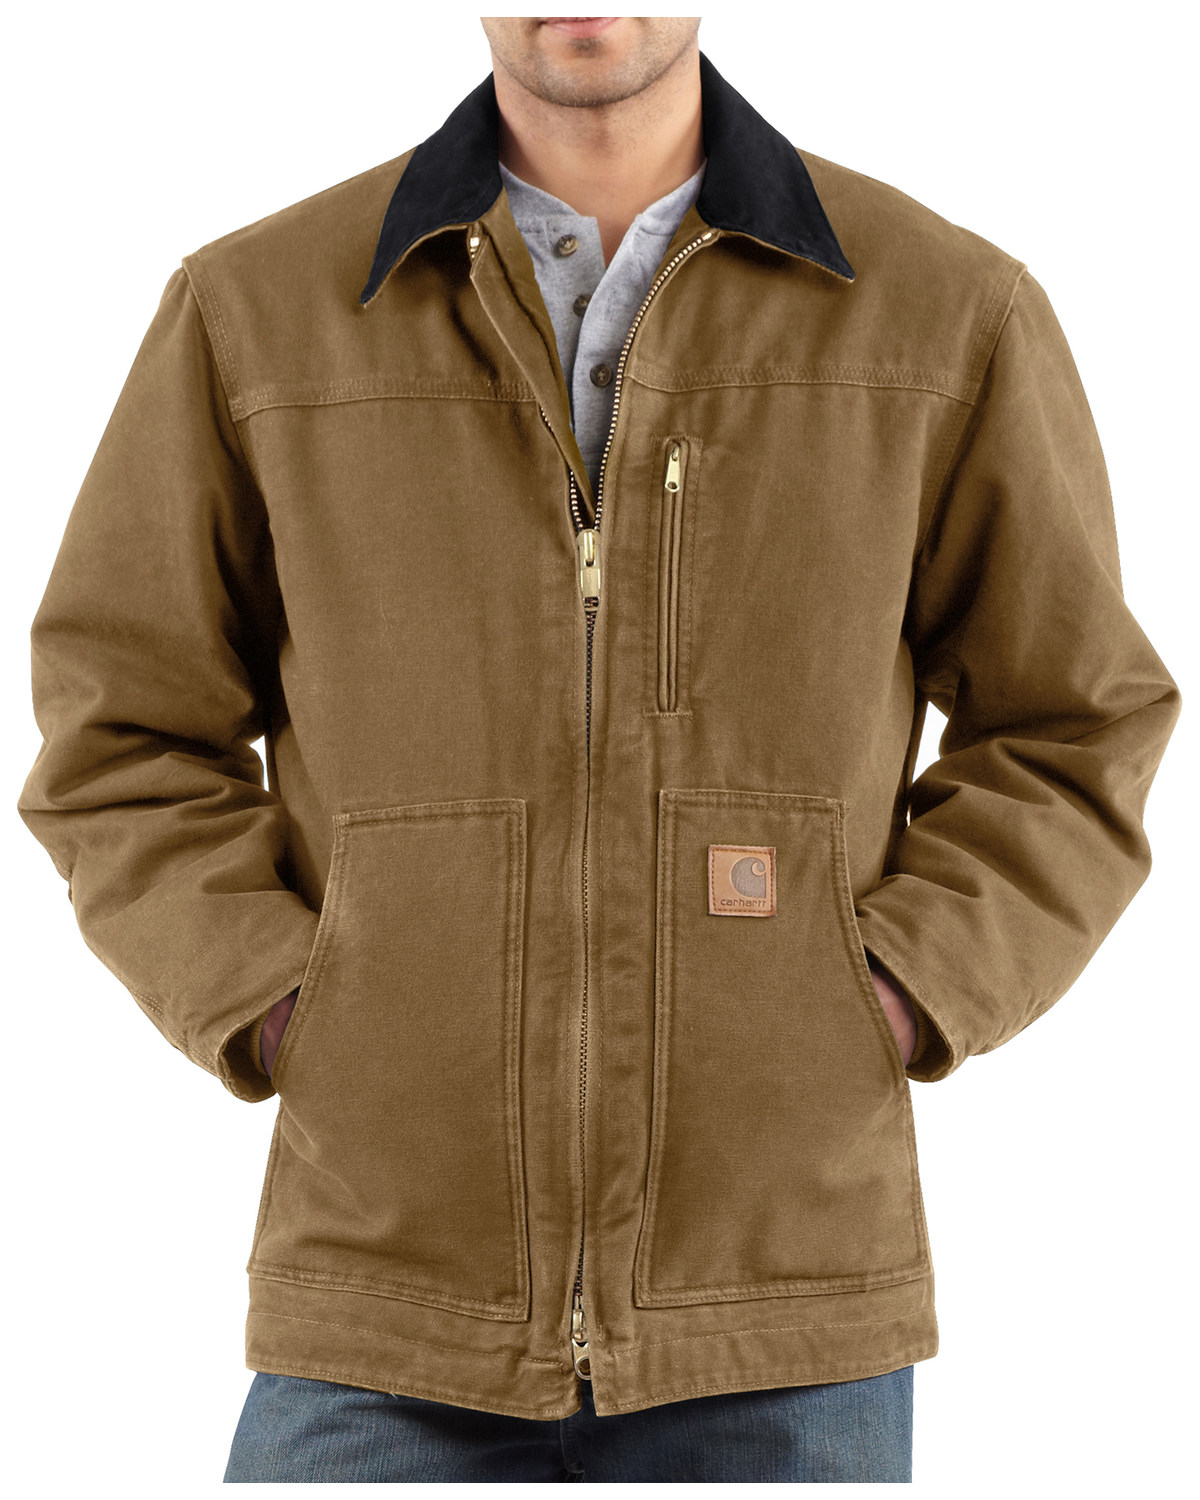 Carhartt Sandstone Ridge Work Coat | Boot Barn